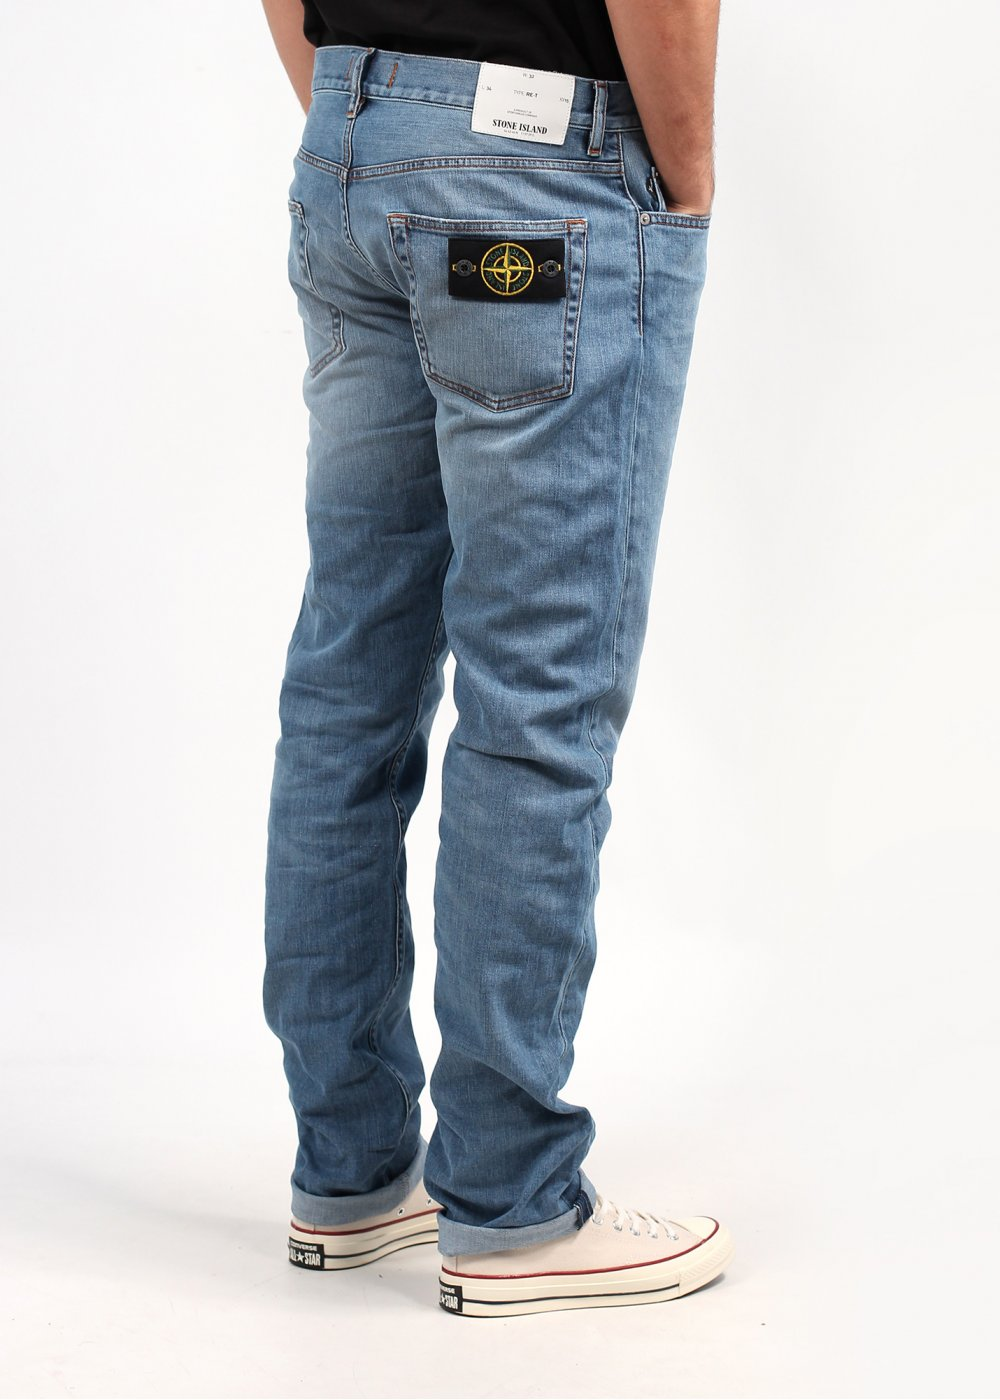 stone island tapered jeans light blue triads mens from. Black Bedroom Furniture Sets. Home Design Ideas